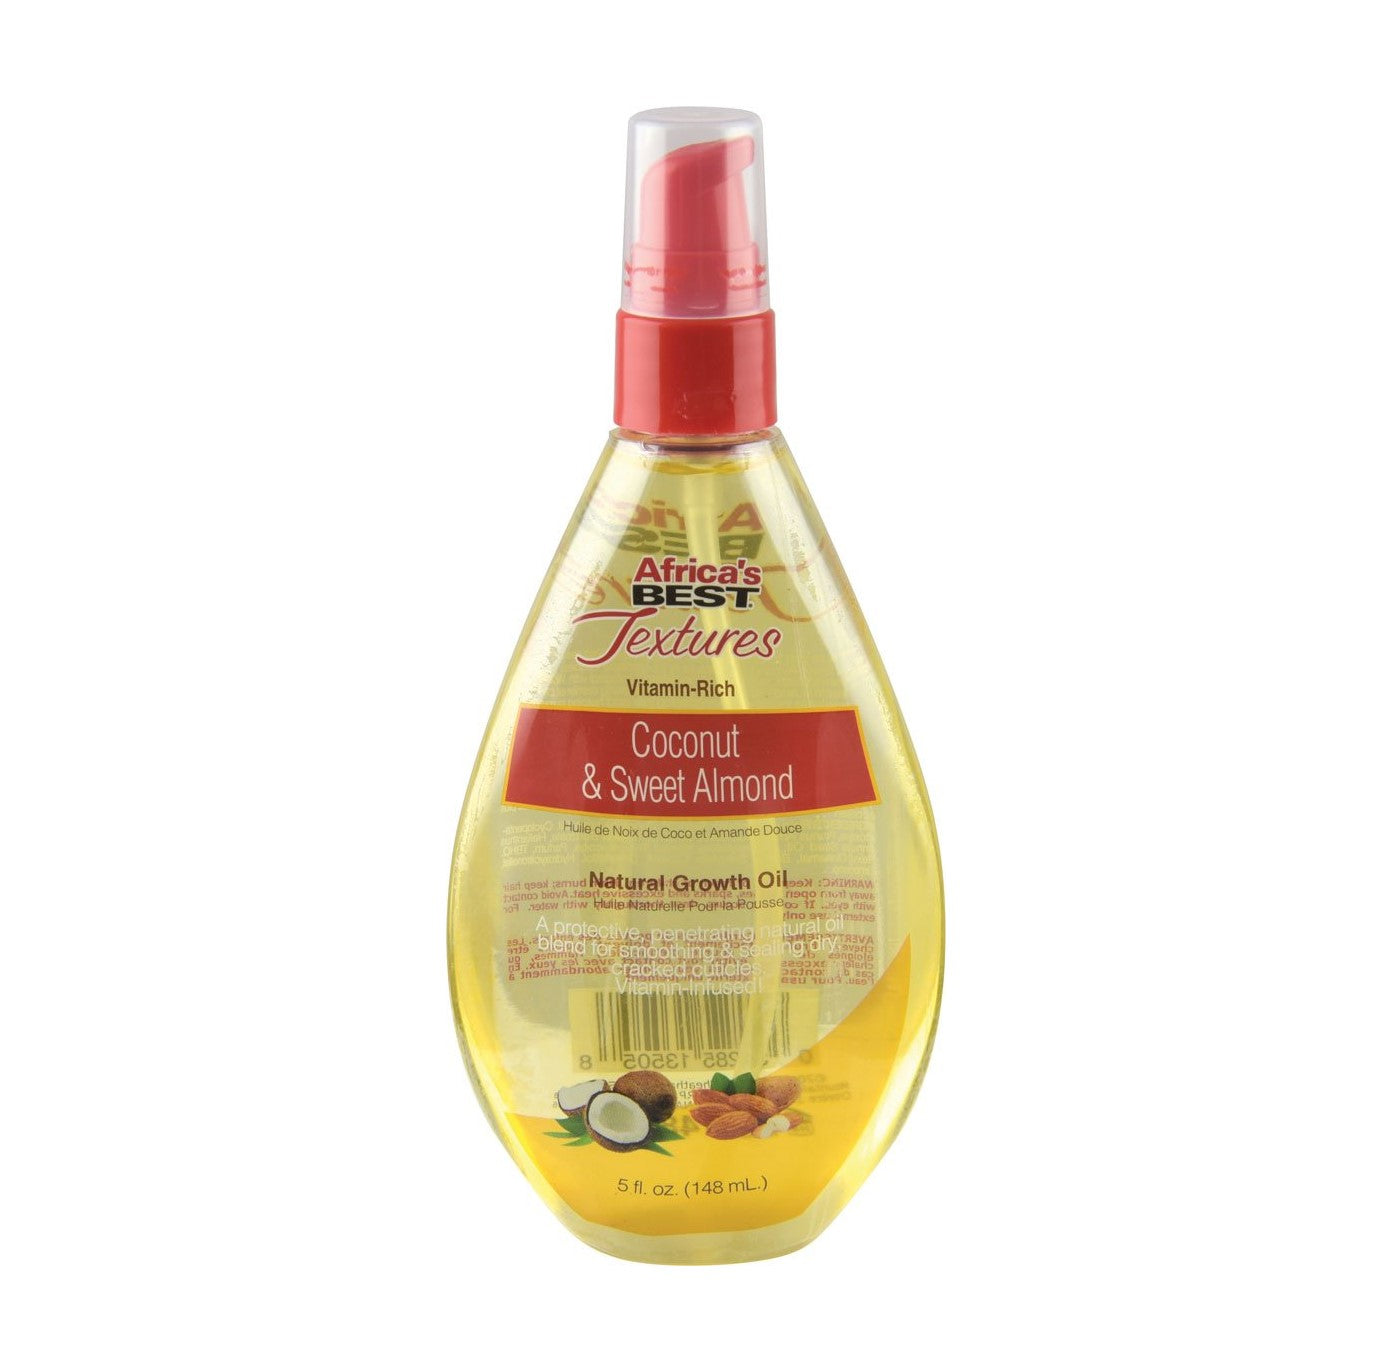 Africa's Best Textures Coconut & Sweat Almond  Natural Growth Oil 5 Oz